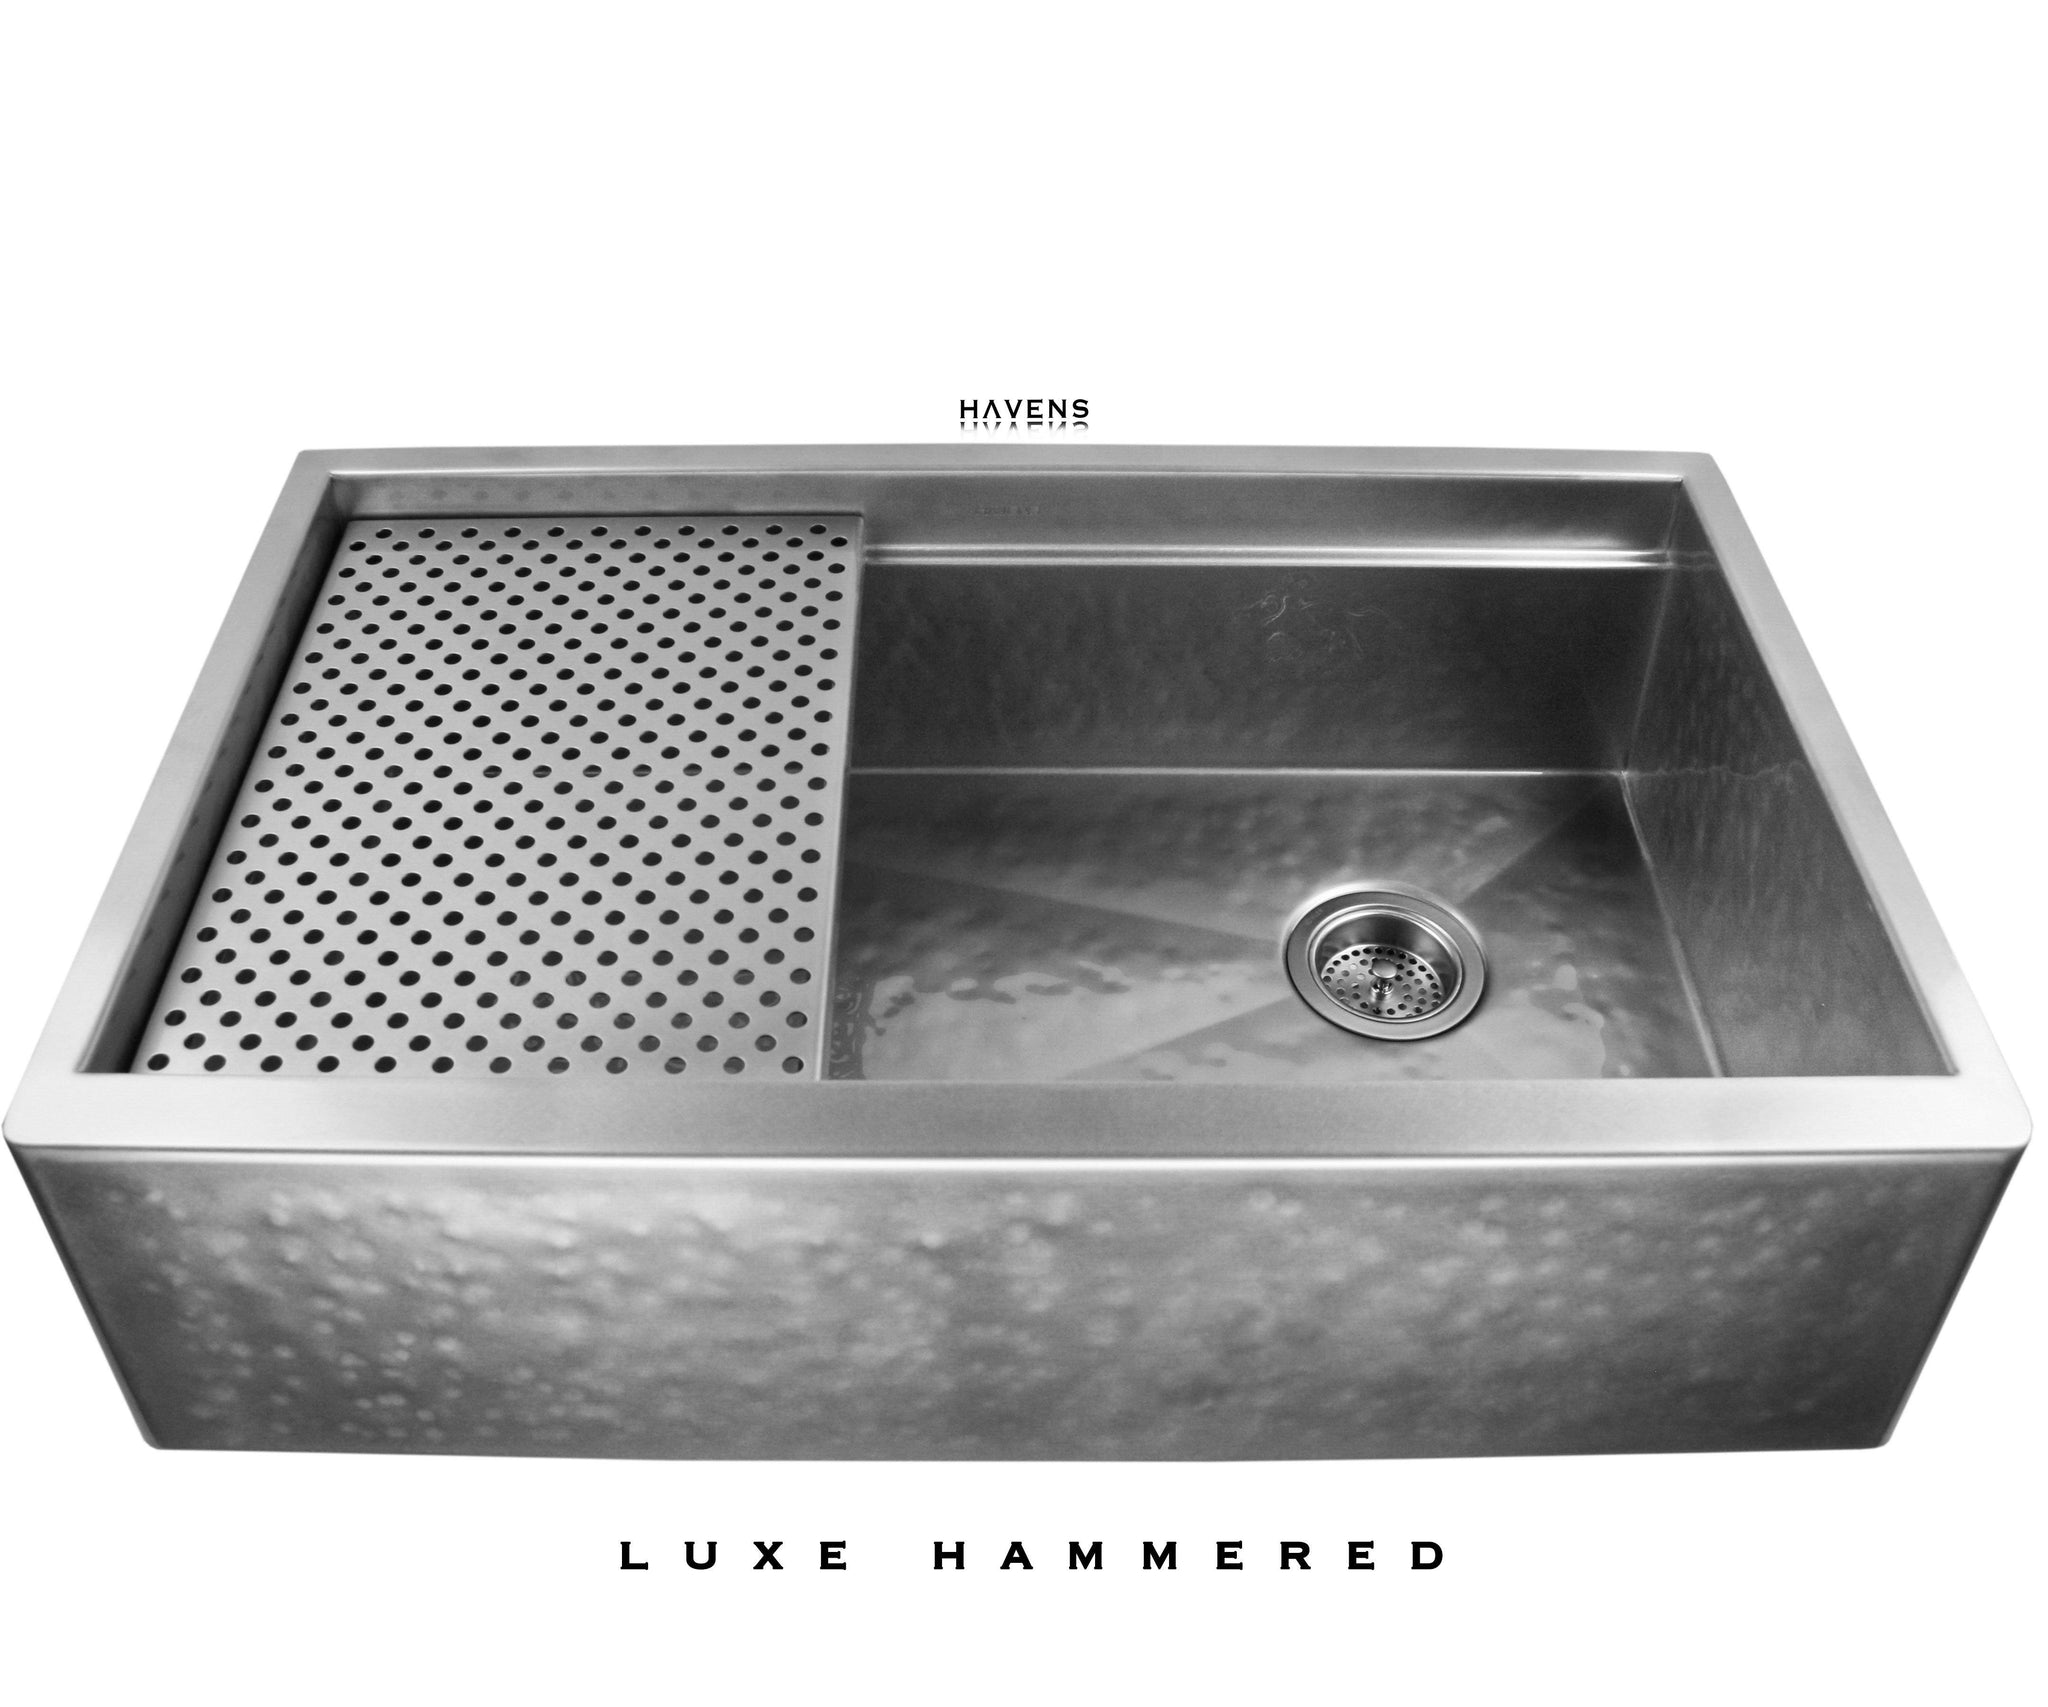 Charmant Legacy Farmhouse Sink   Luxe Hammered Stainless